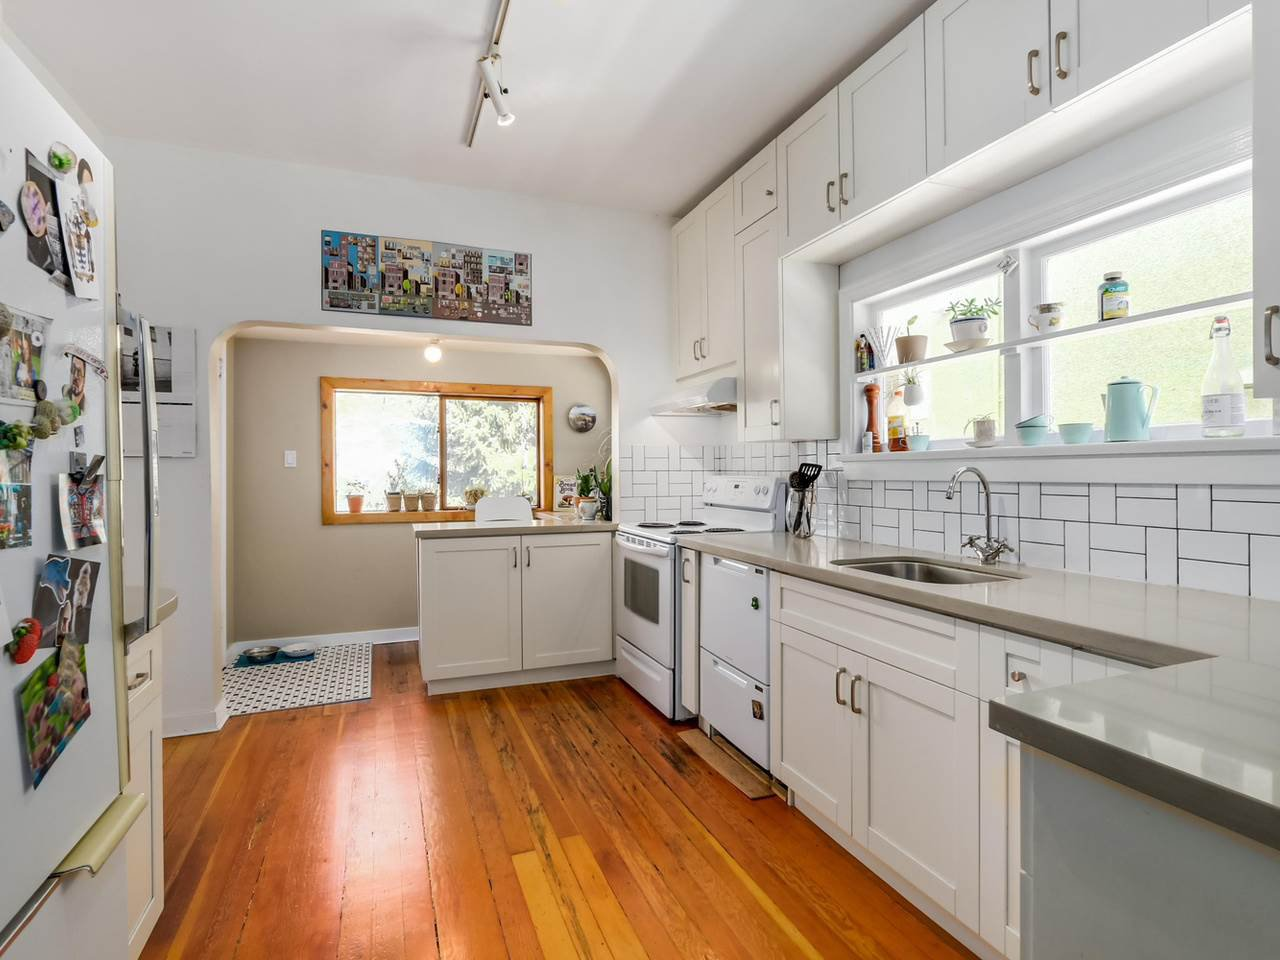 """Photo 6: Photos: 835 E 19TH Avenue in Vancouver: Fraser VE House for sale in """"CEDAR COTTAGE"""" (Vancouver East)  : MLS®# R2071745"""